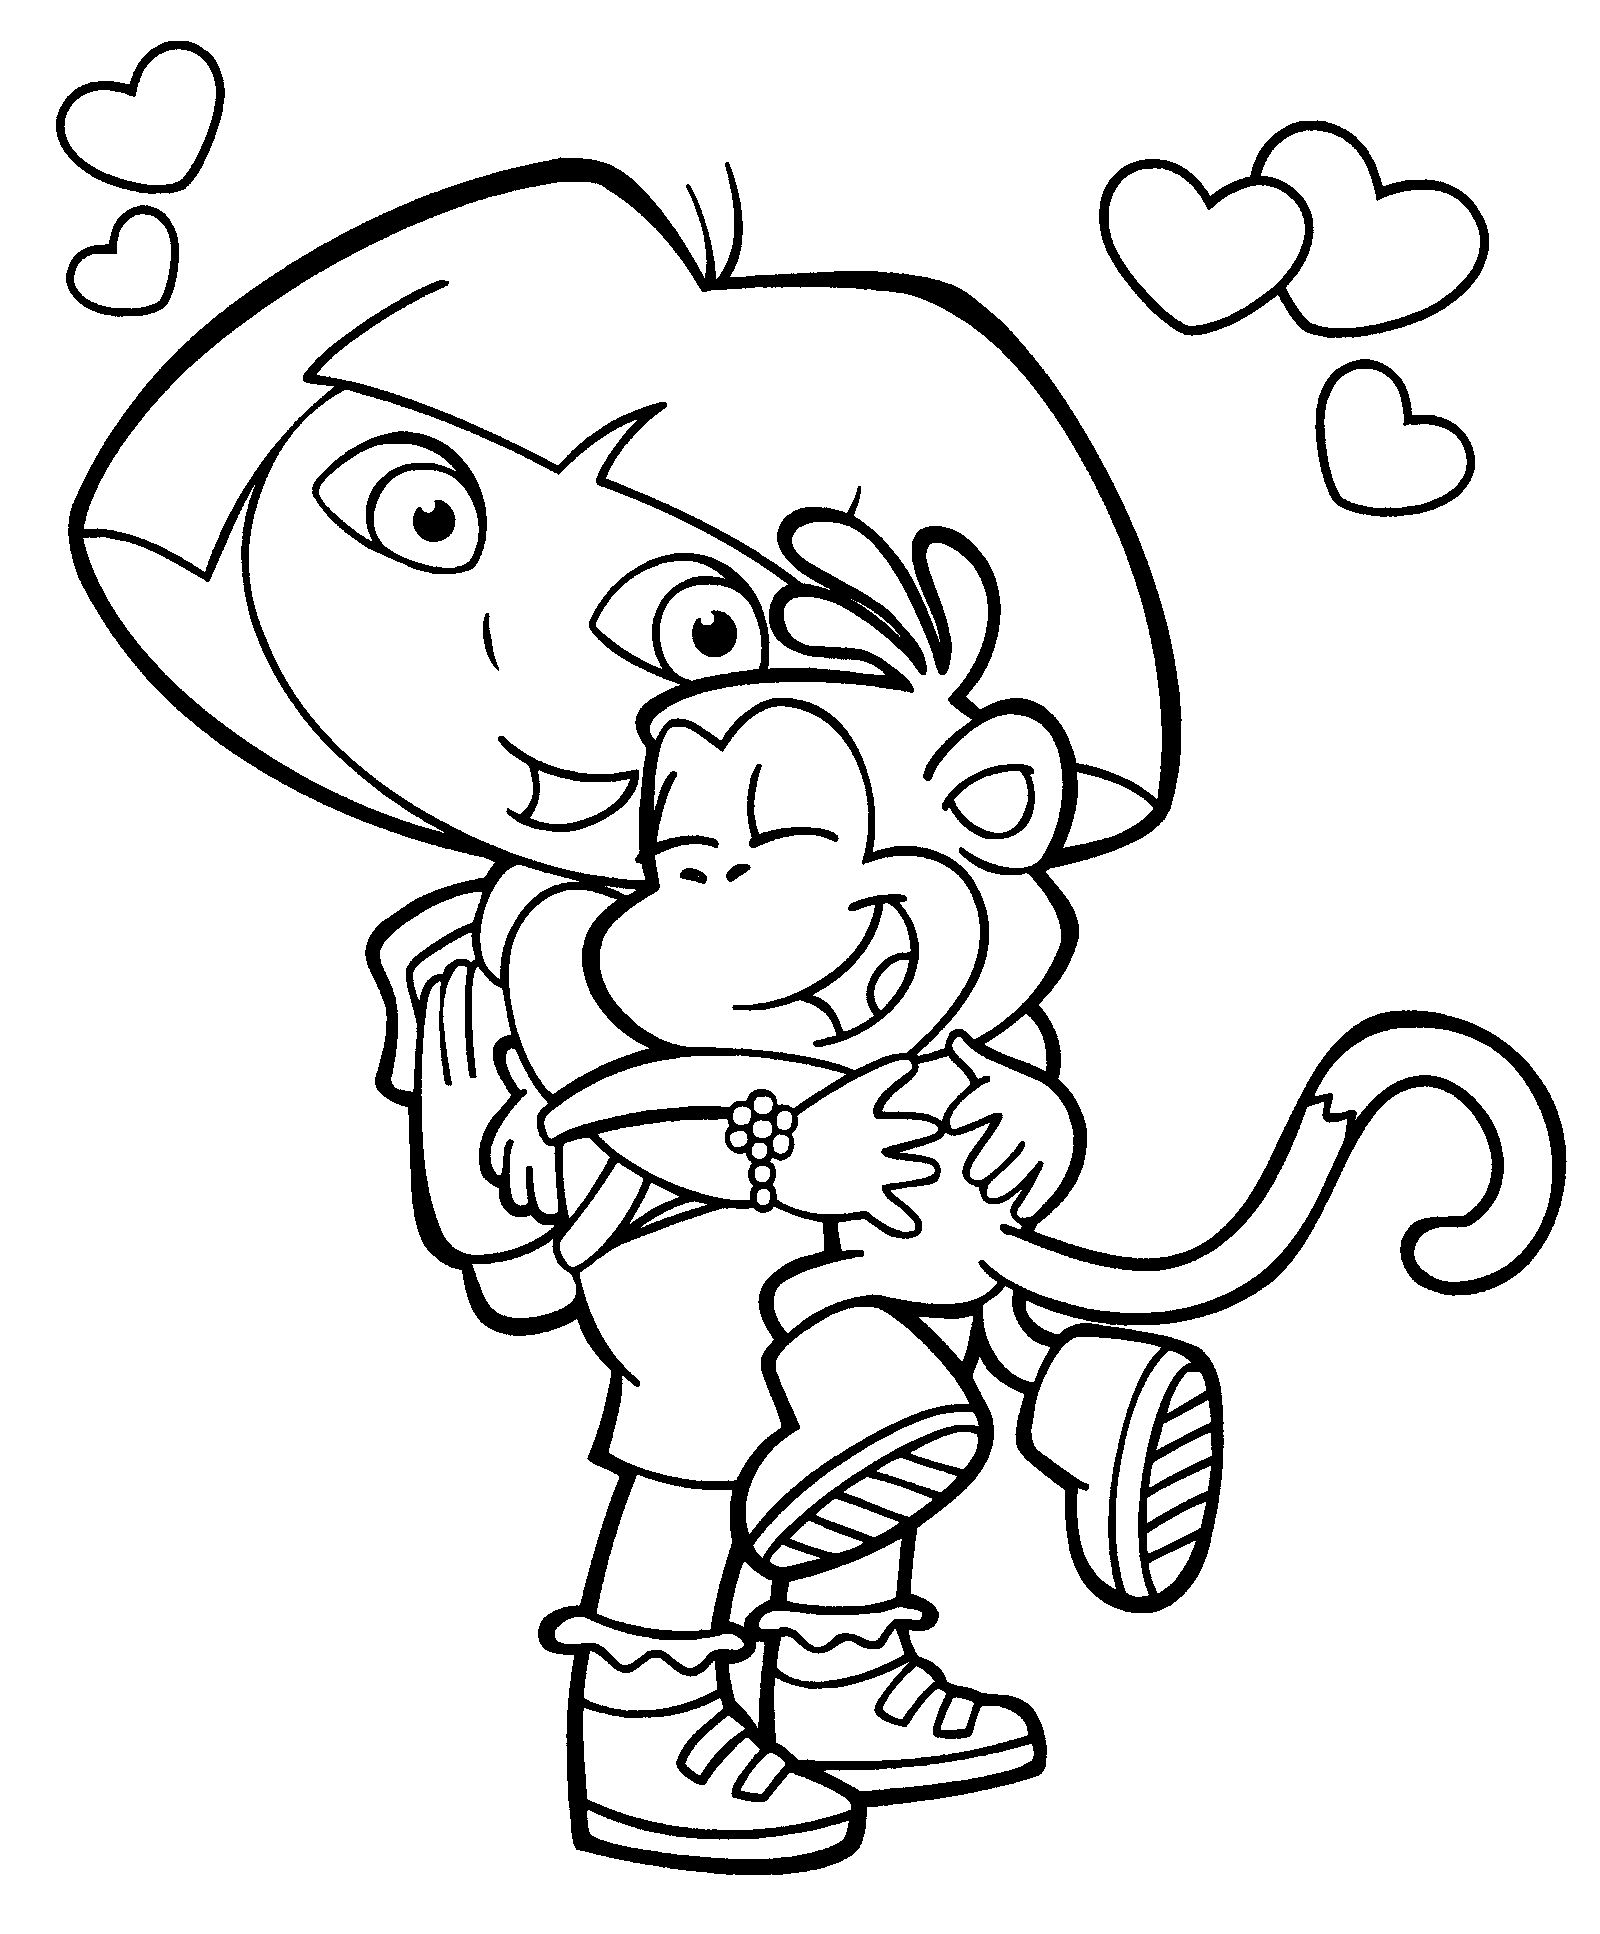 Nick jr summer coloring pages - Free Dora Pictures To Print And Color Dora Coloring Your 1 Dora Coloring